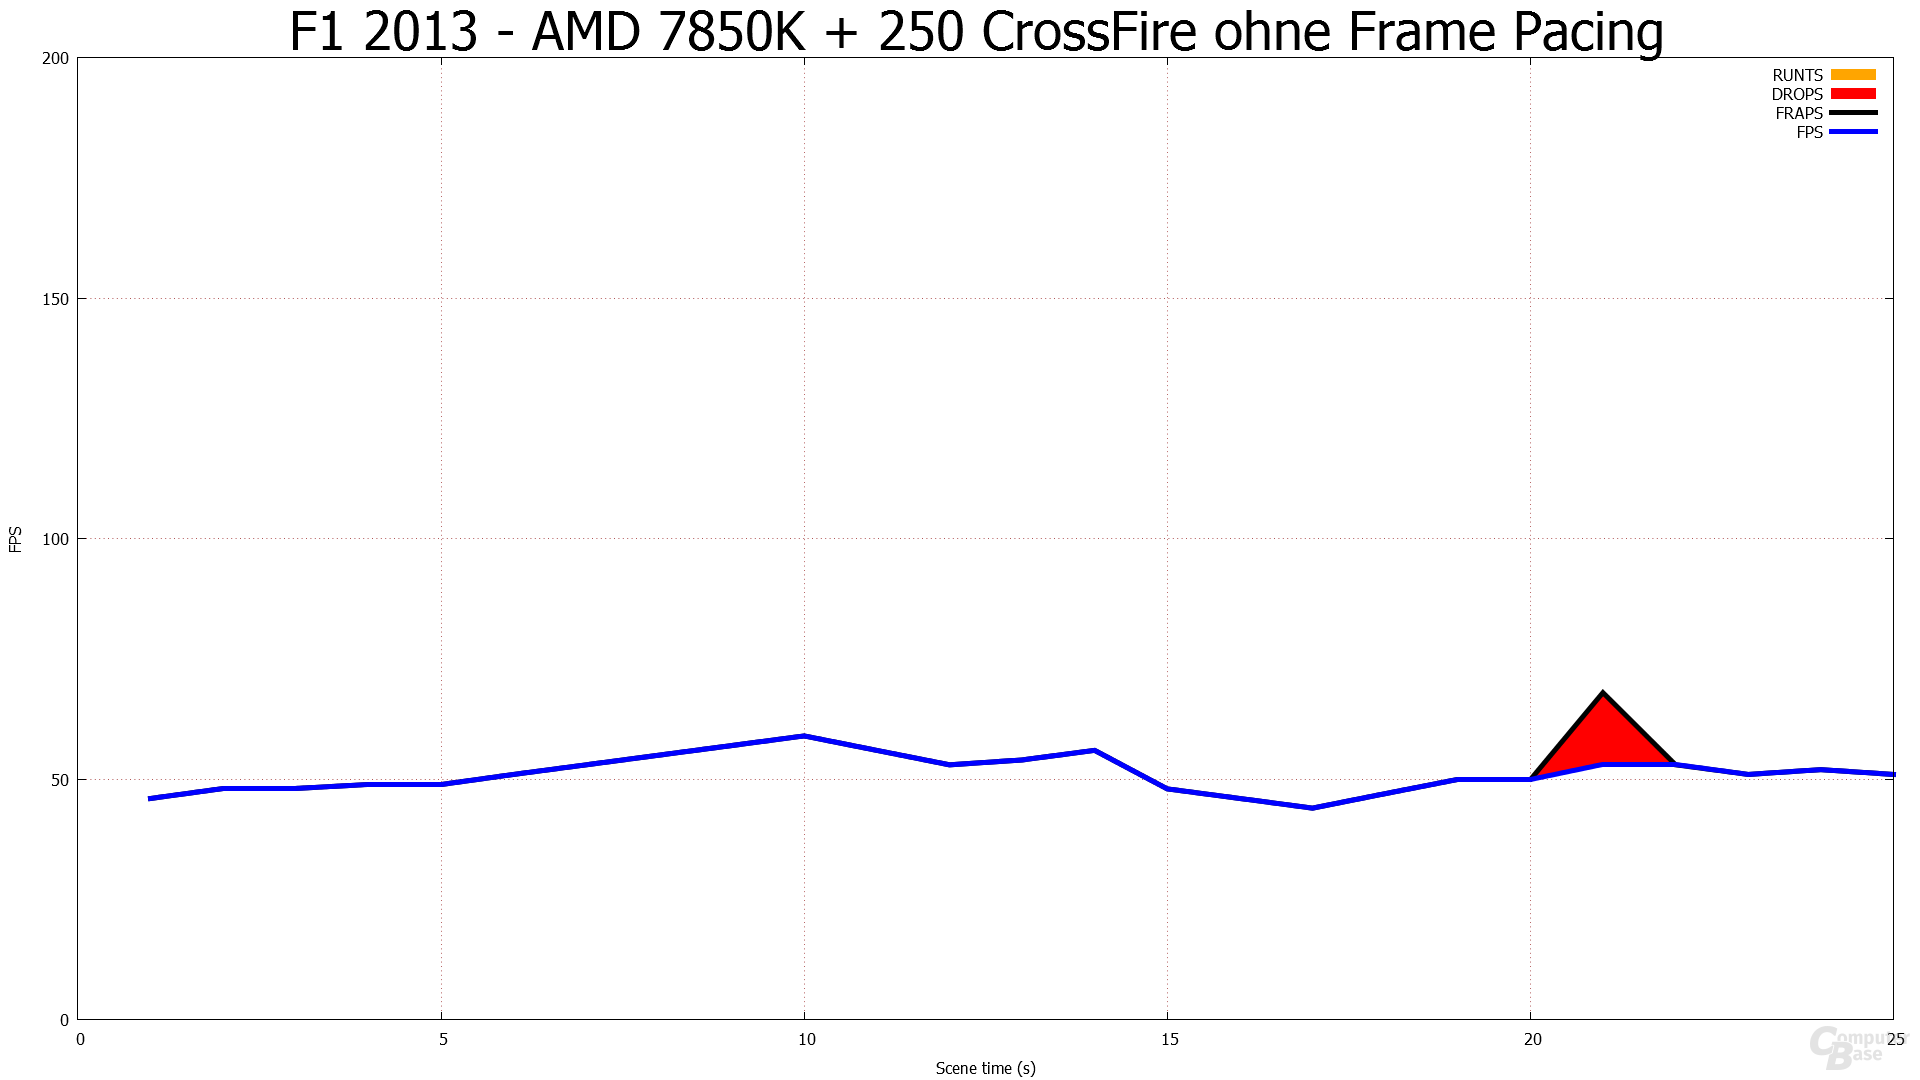 Ohne Frame Pacing - F1 2013